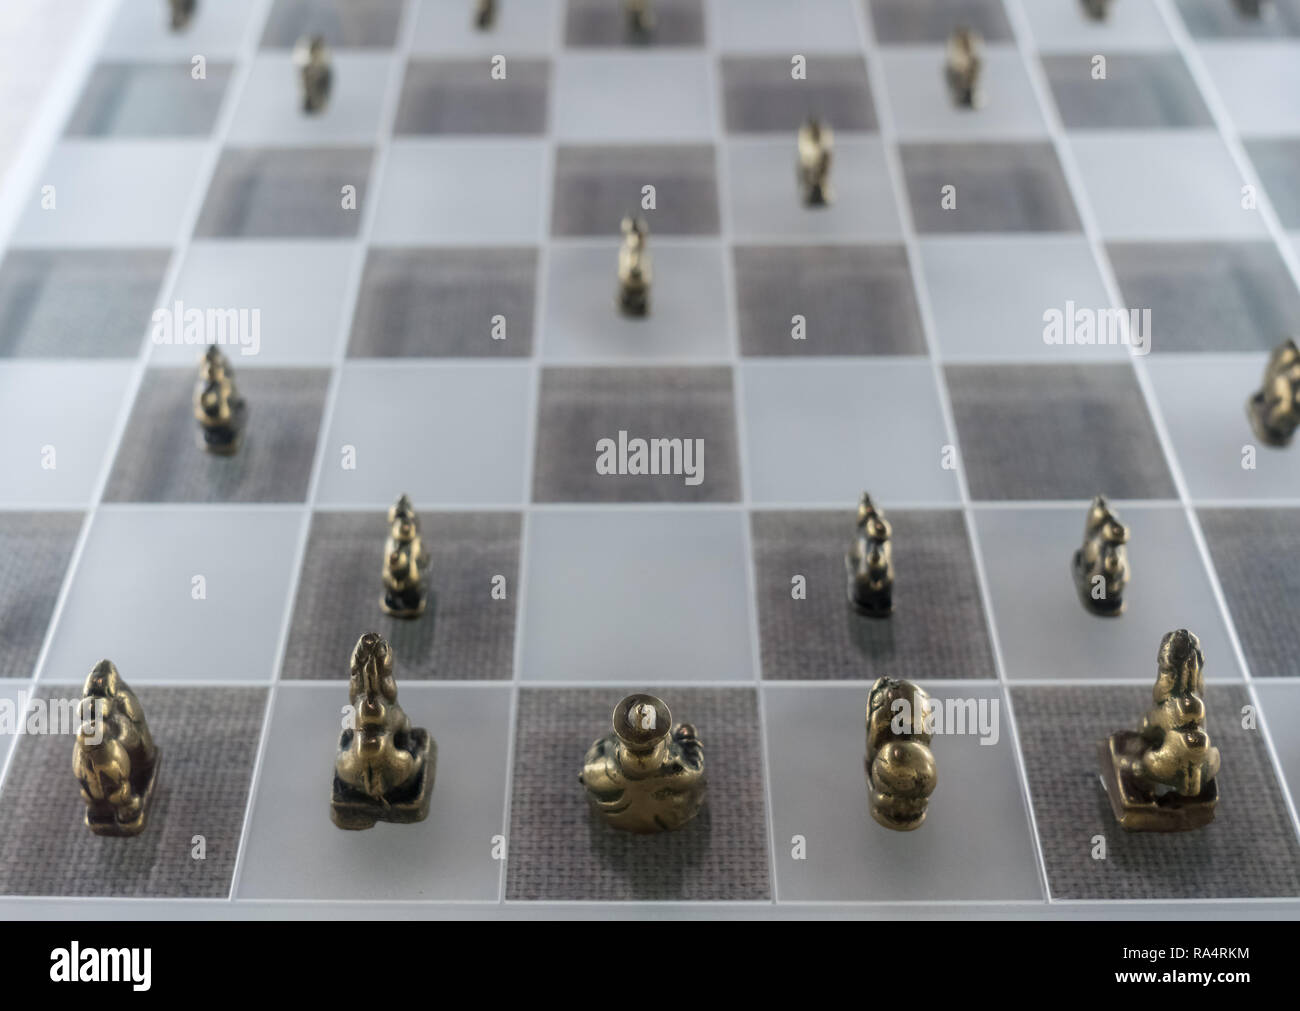 Cast metal chess men on glass board - Stock Image